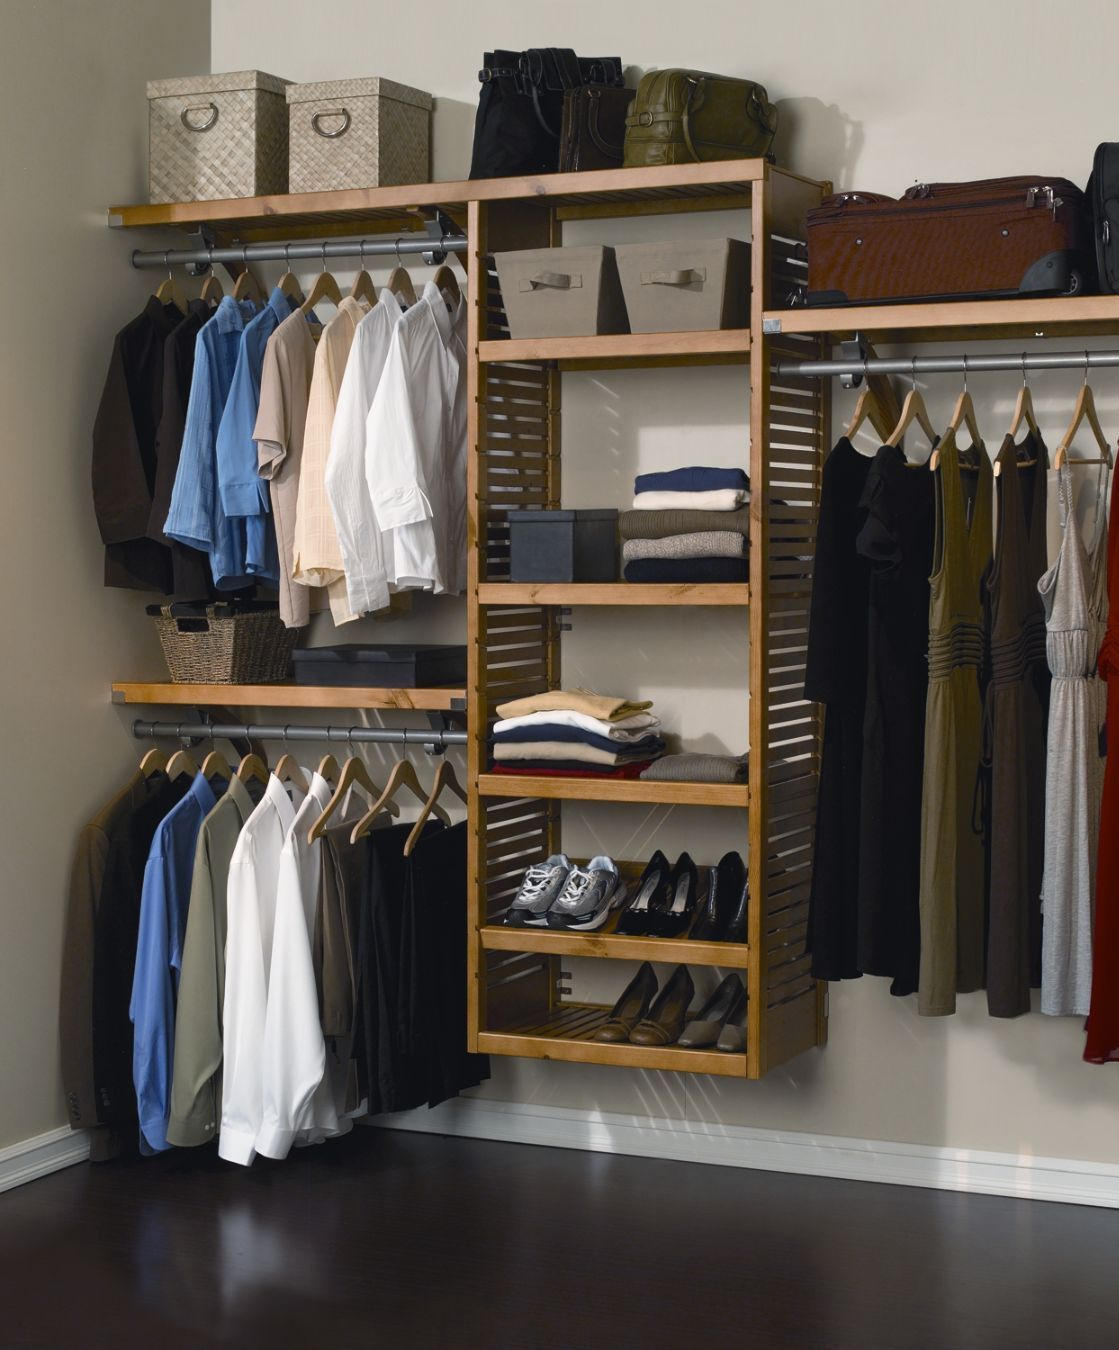 wall organizers custom wardrobe inserts drawers storage design system own premade closet full components systems size garage mounted walk in organizer of your